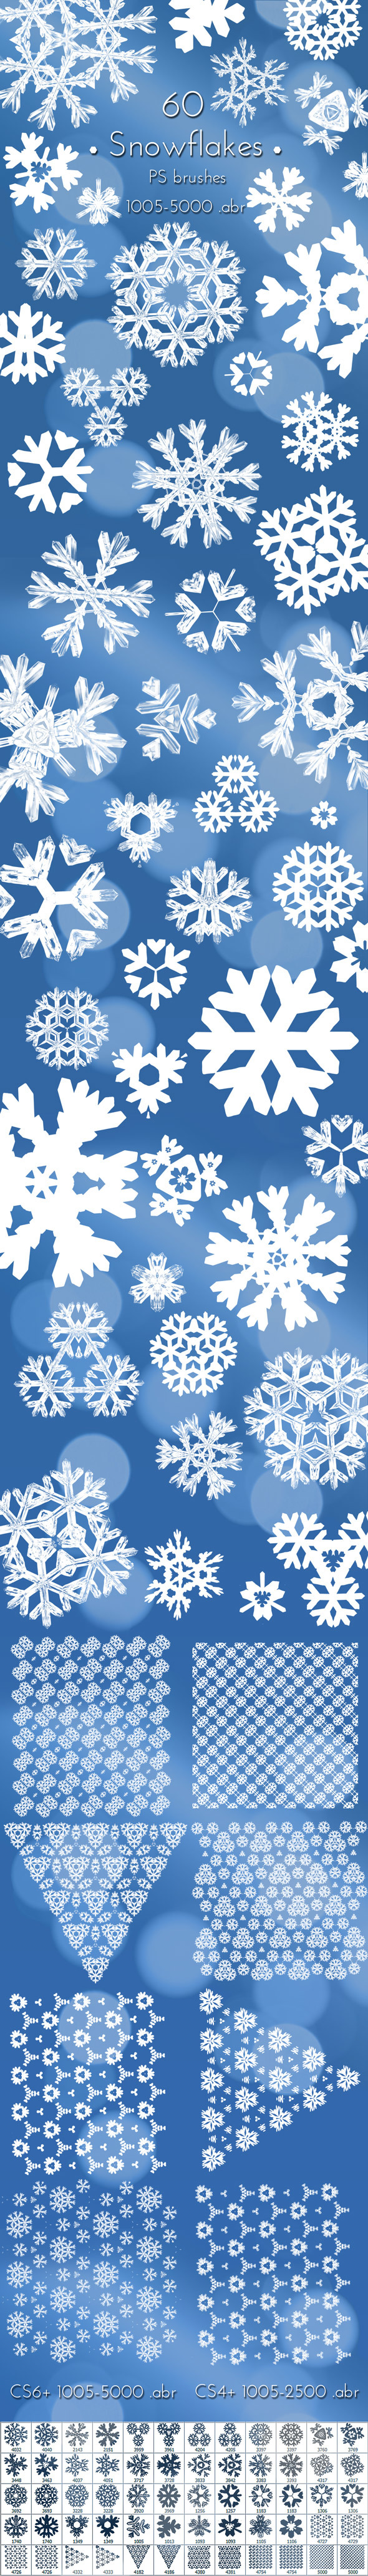 Christmas Snowflakes Brushes